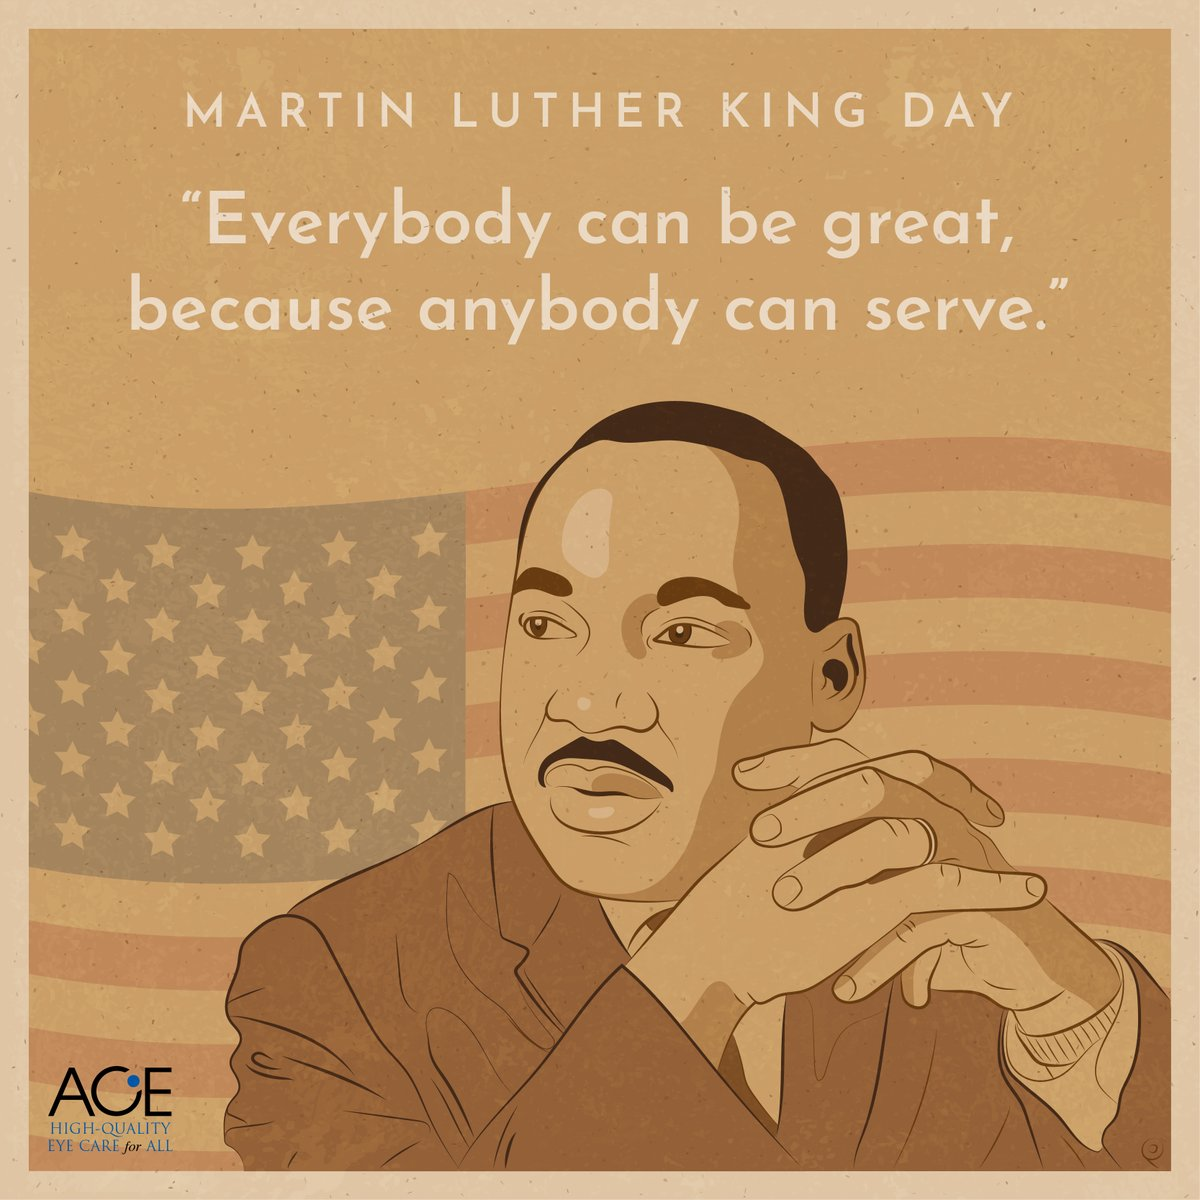 Today we honor the legacy of Martin Luther King, Jr, not just by remembering his words and actions, but also by following his example. Here are 19 great ways you can virtually serve on MLK Day:   #mlkday #service #giveback